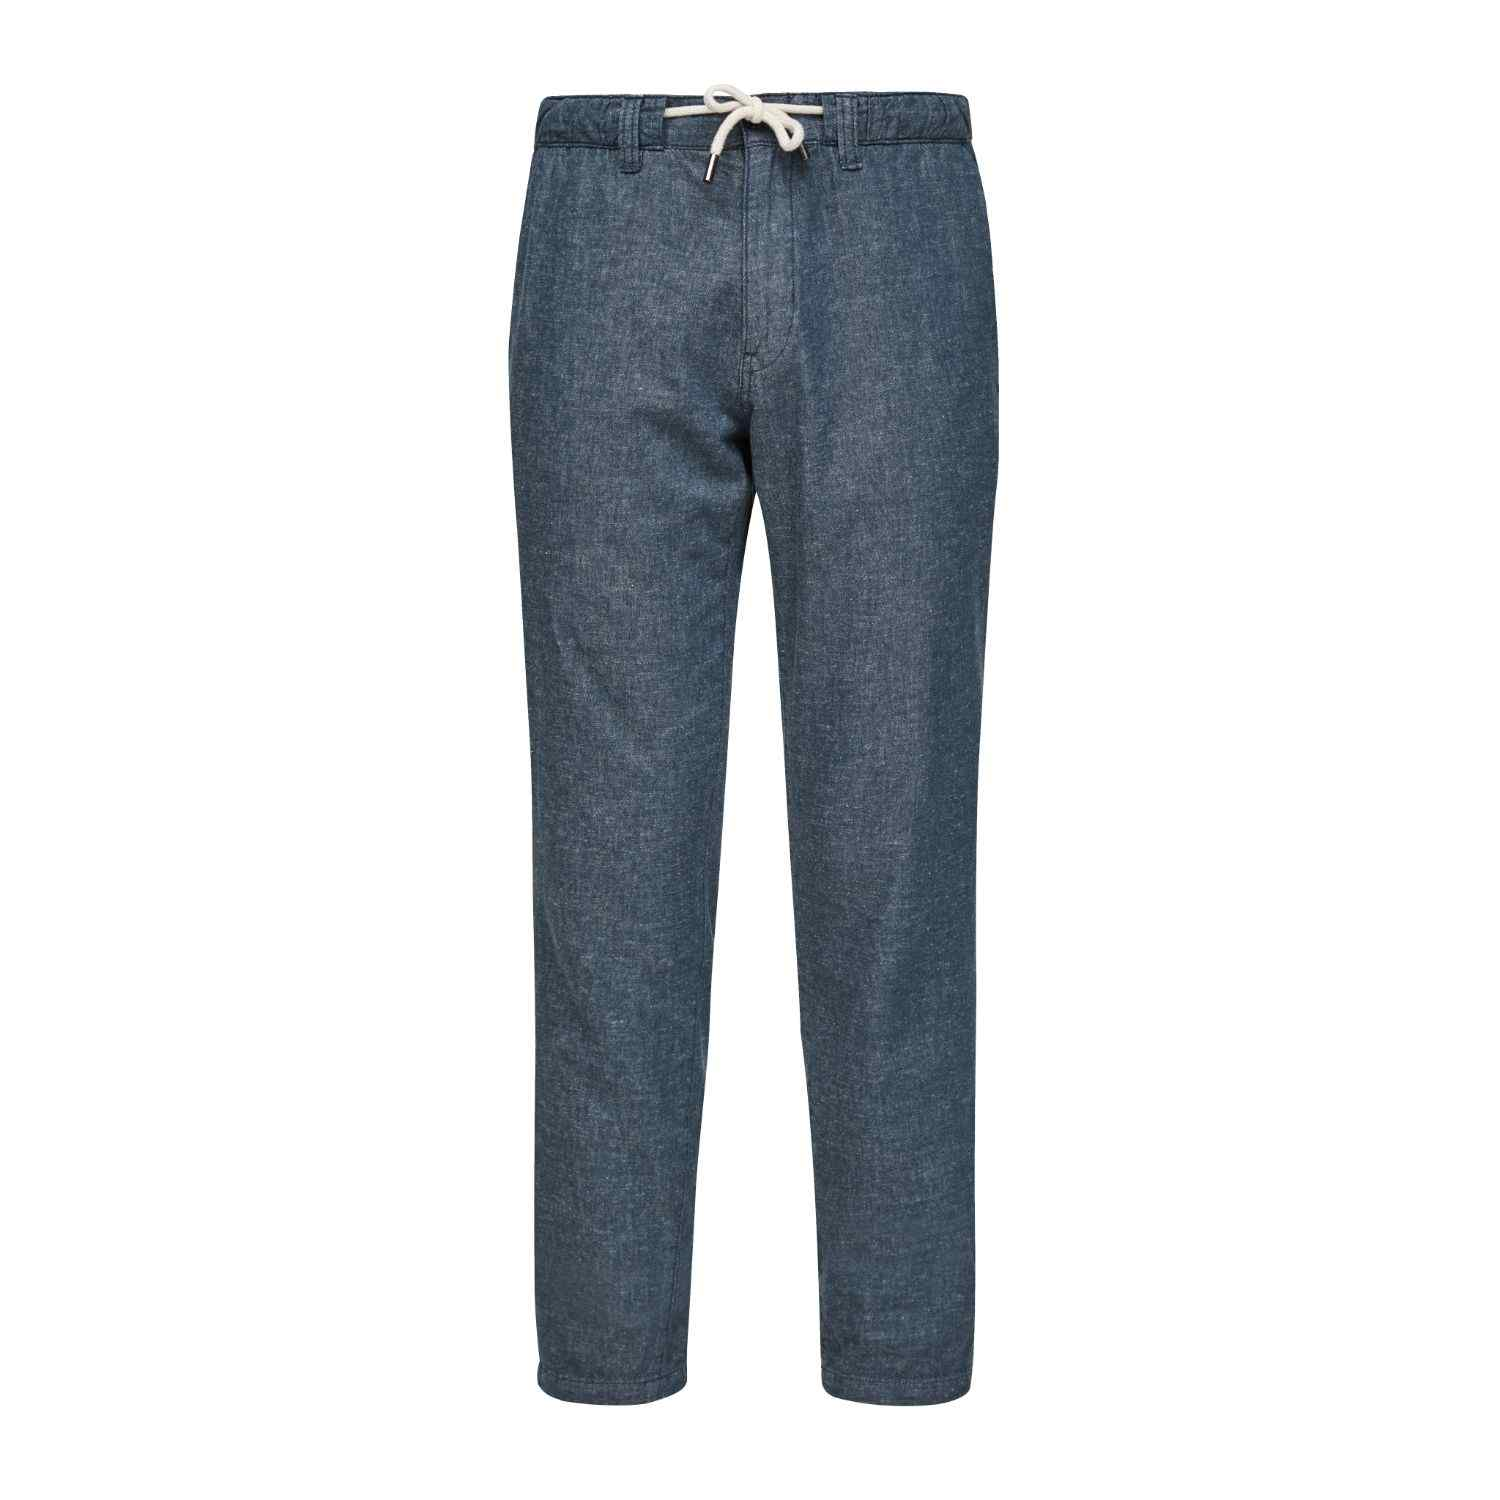 Relaxed Fit Leinen Hose